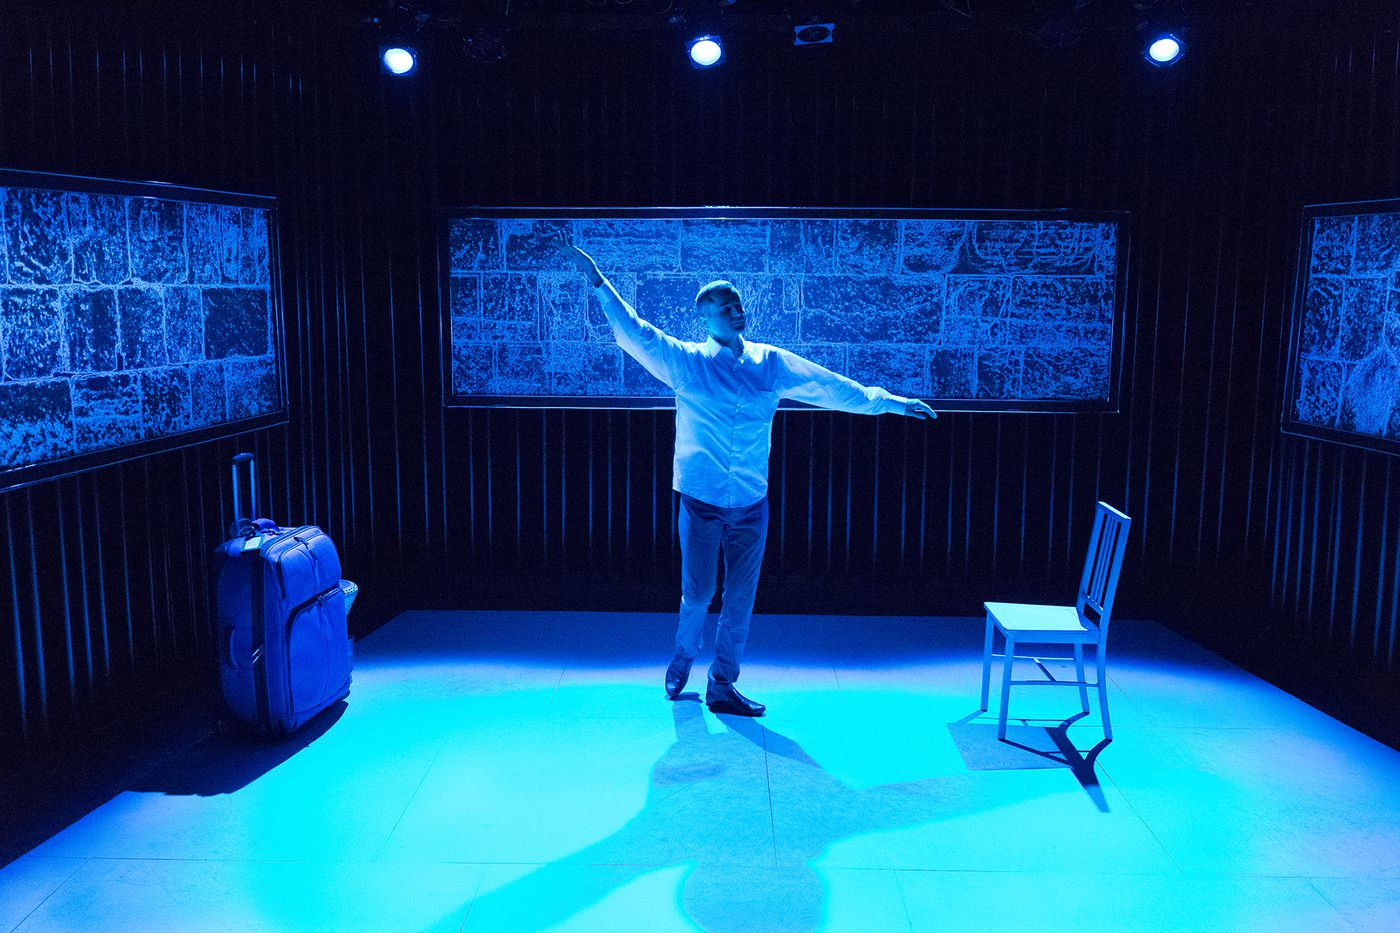 'In Between' at Walnut Studio 3: Worthwhile themes, but without complexity or firm direction